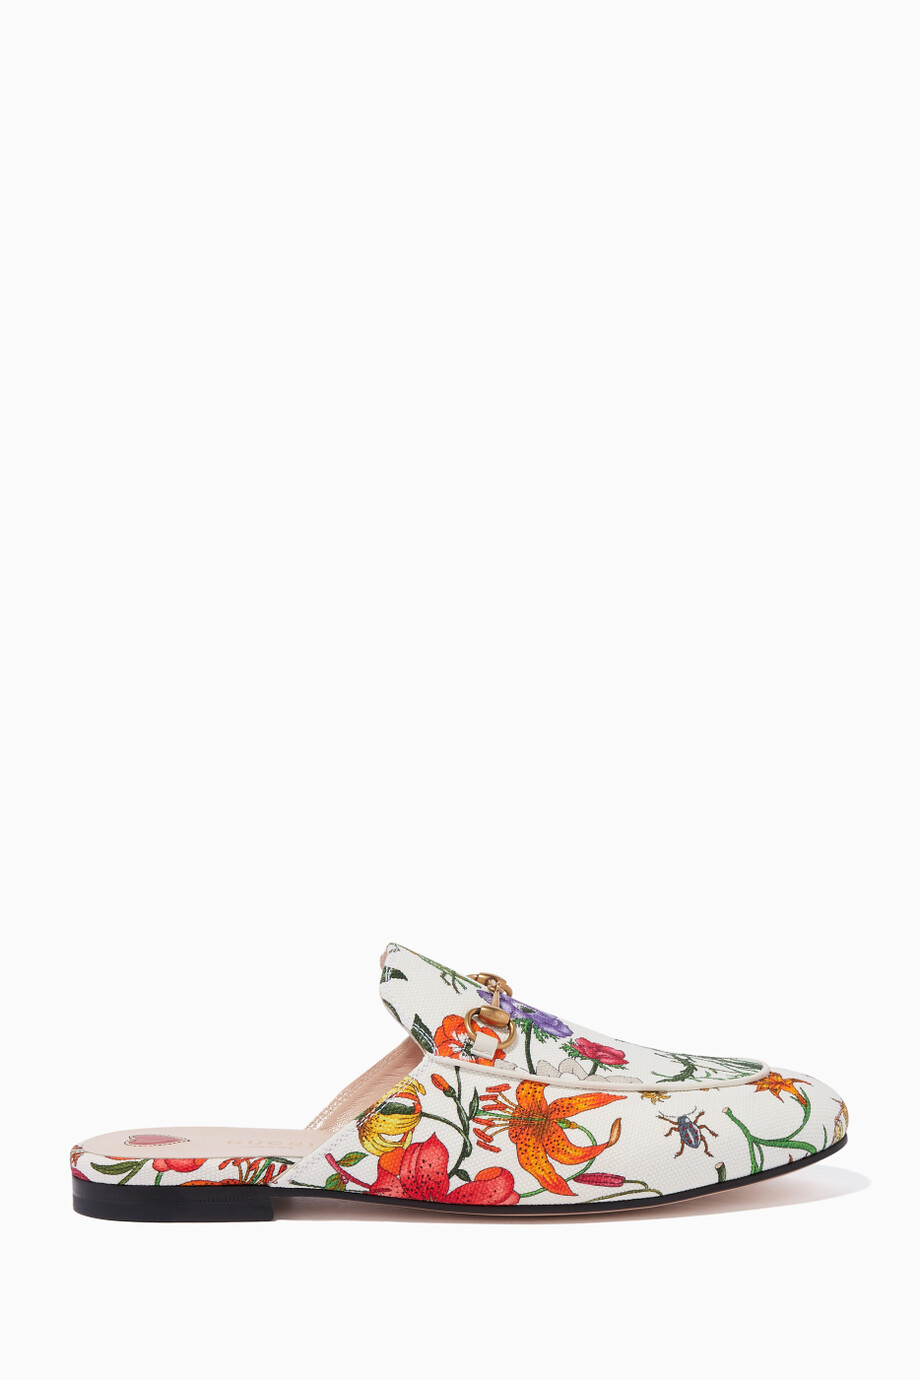 faa714dae2ba Shop Gucci White White Floral-Print Princetown Slippers for Women ...